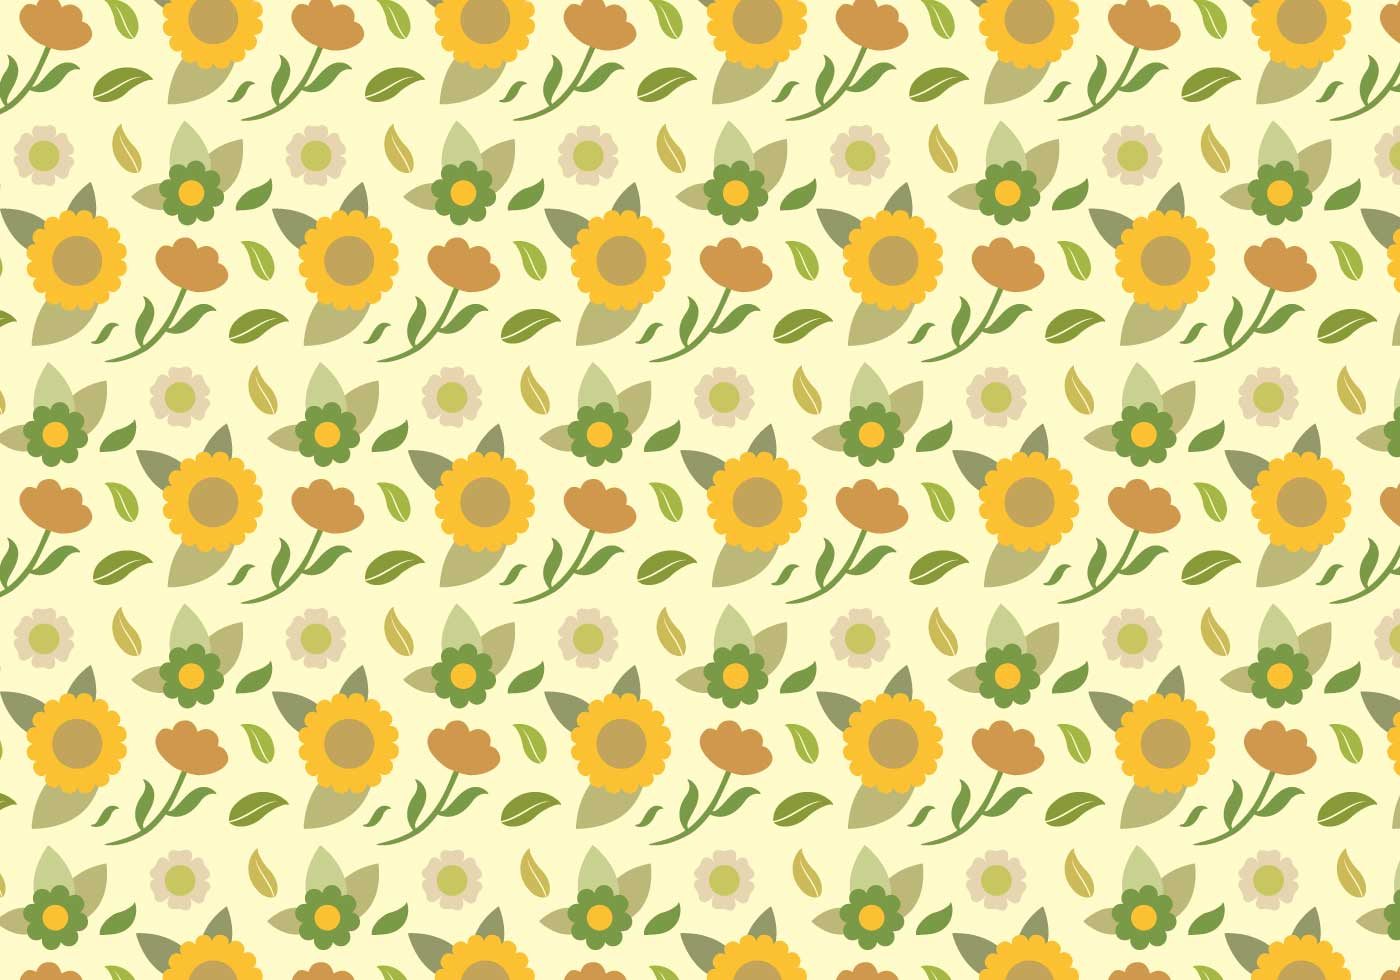 yellow floral pattern - photo #38